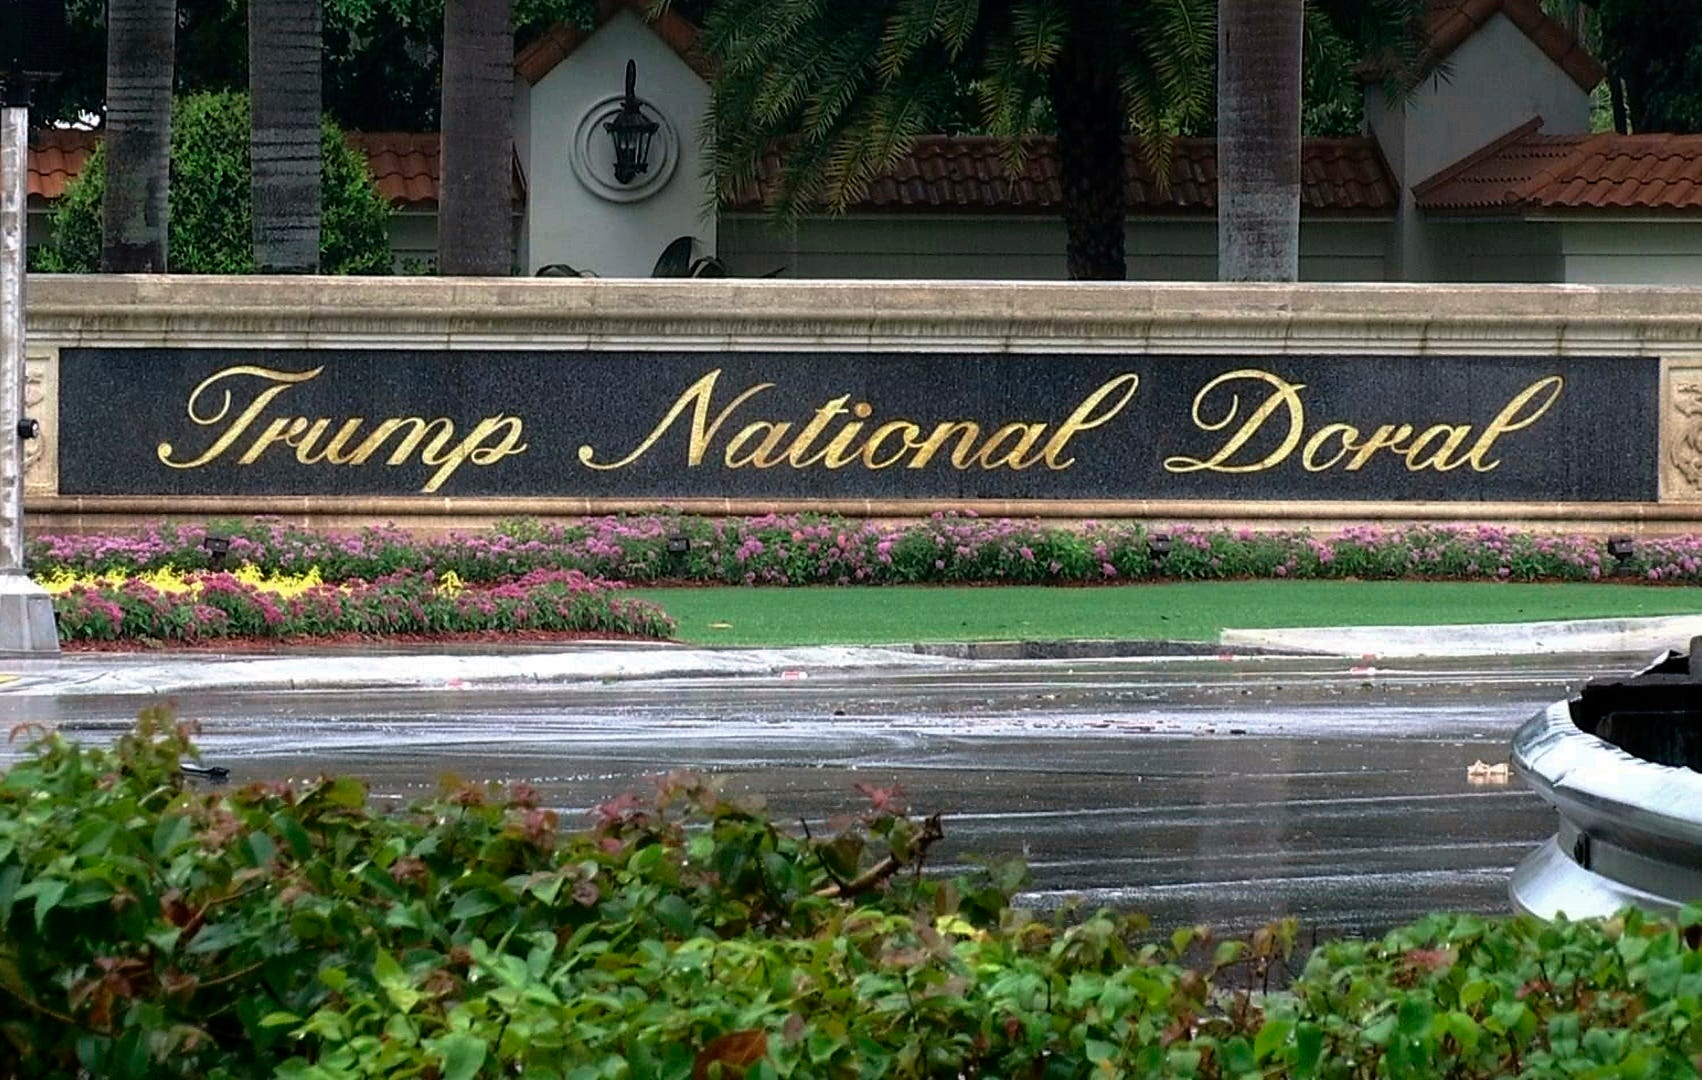 House Judiciary Committee to investigate Trumps desire to use his Doral resort to host next G-7 summit